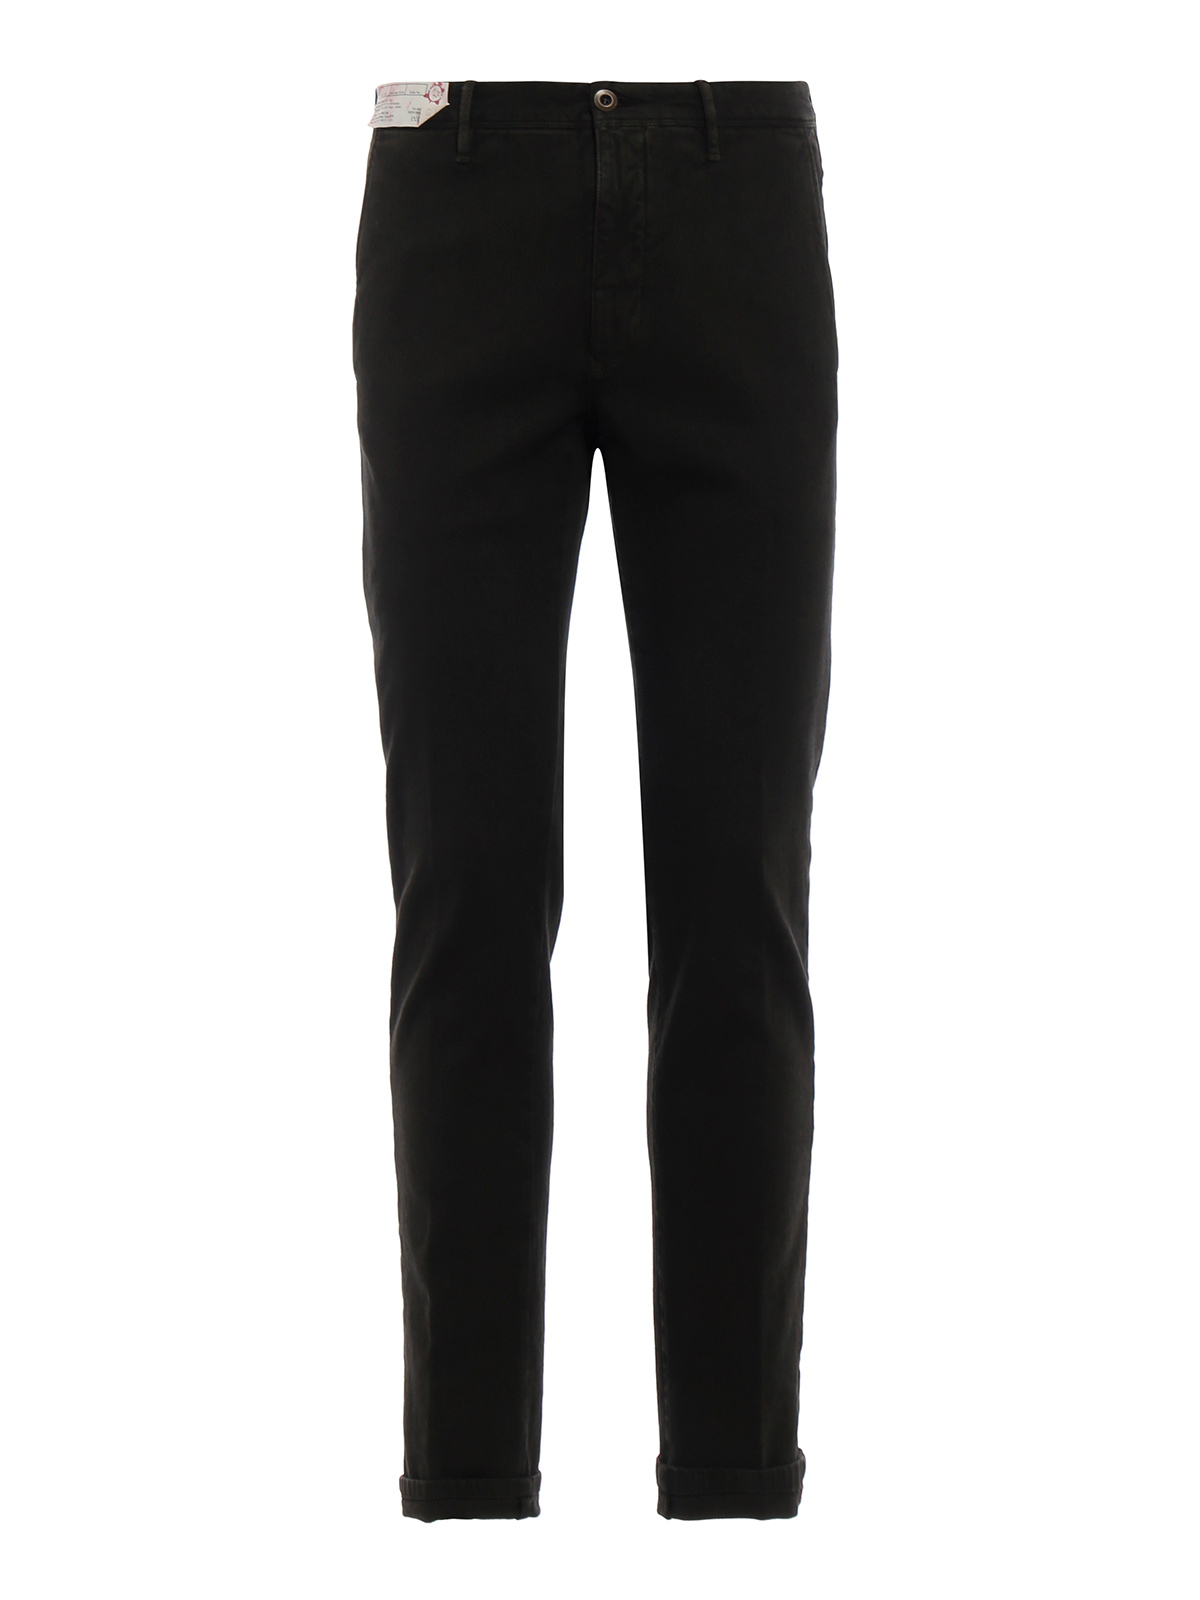 Immagine di INCOTEX | TROUSERS PANTALONE